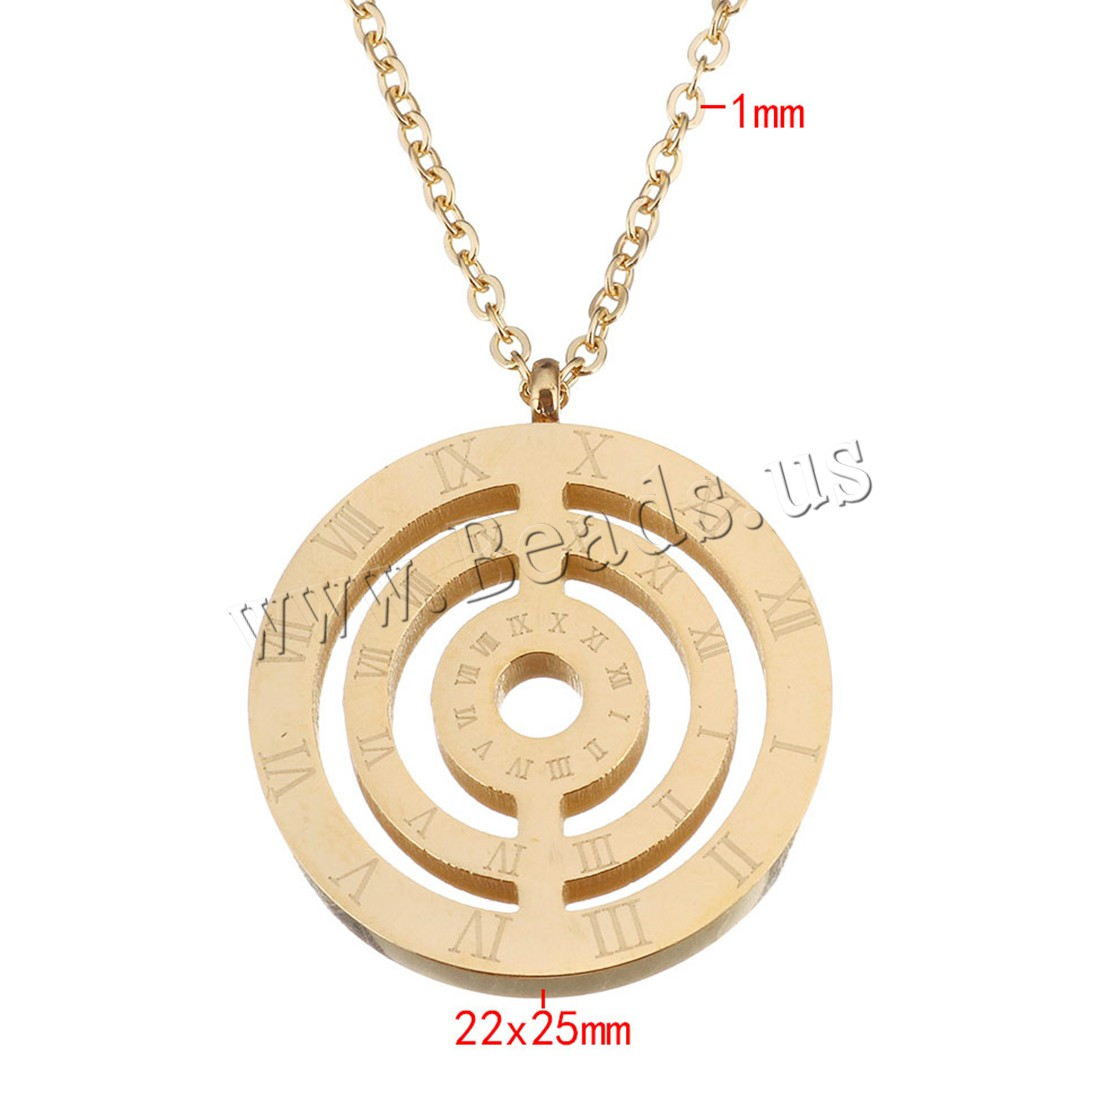 Buy Stainless Steel Jewelry Necklace gold color plated roman number & oval chain & woman 22x25mm 1mm Length:Approx 18 Inch 10Strands/Lot Sold Lot